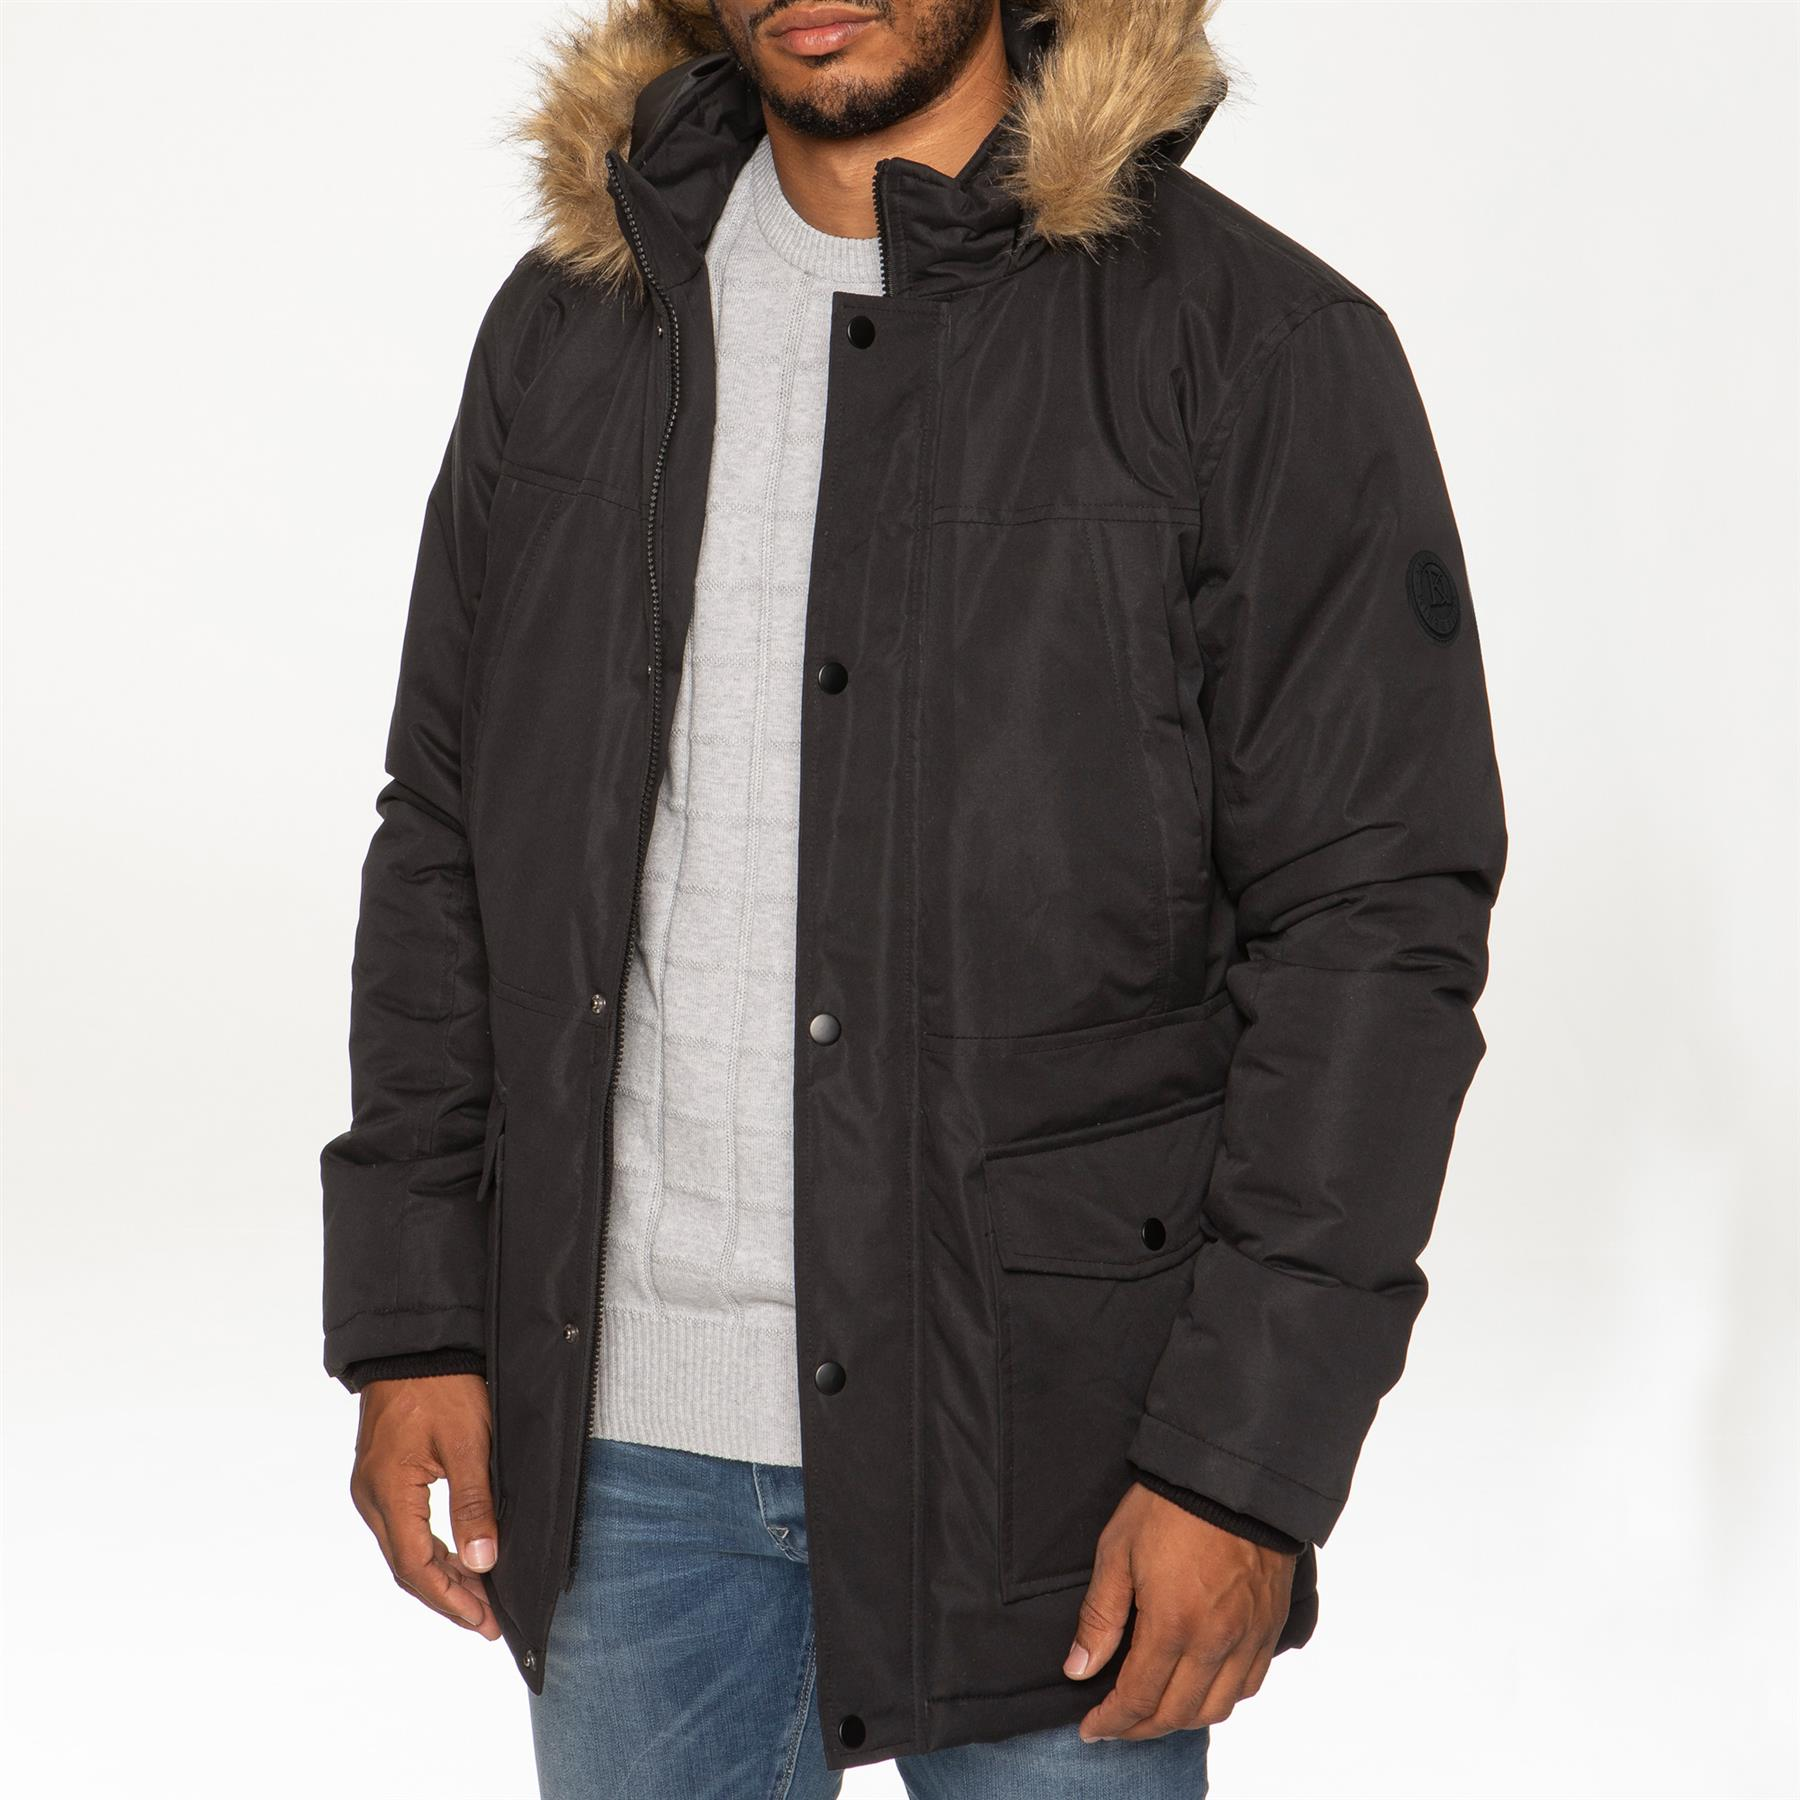 Mens-Parka-Jacket-Faux-Fur-Trimmed-Hooded-Winter-Warm-Long-Padded-Outerwear-Coat thumbnail 3